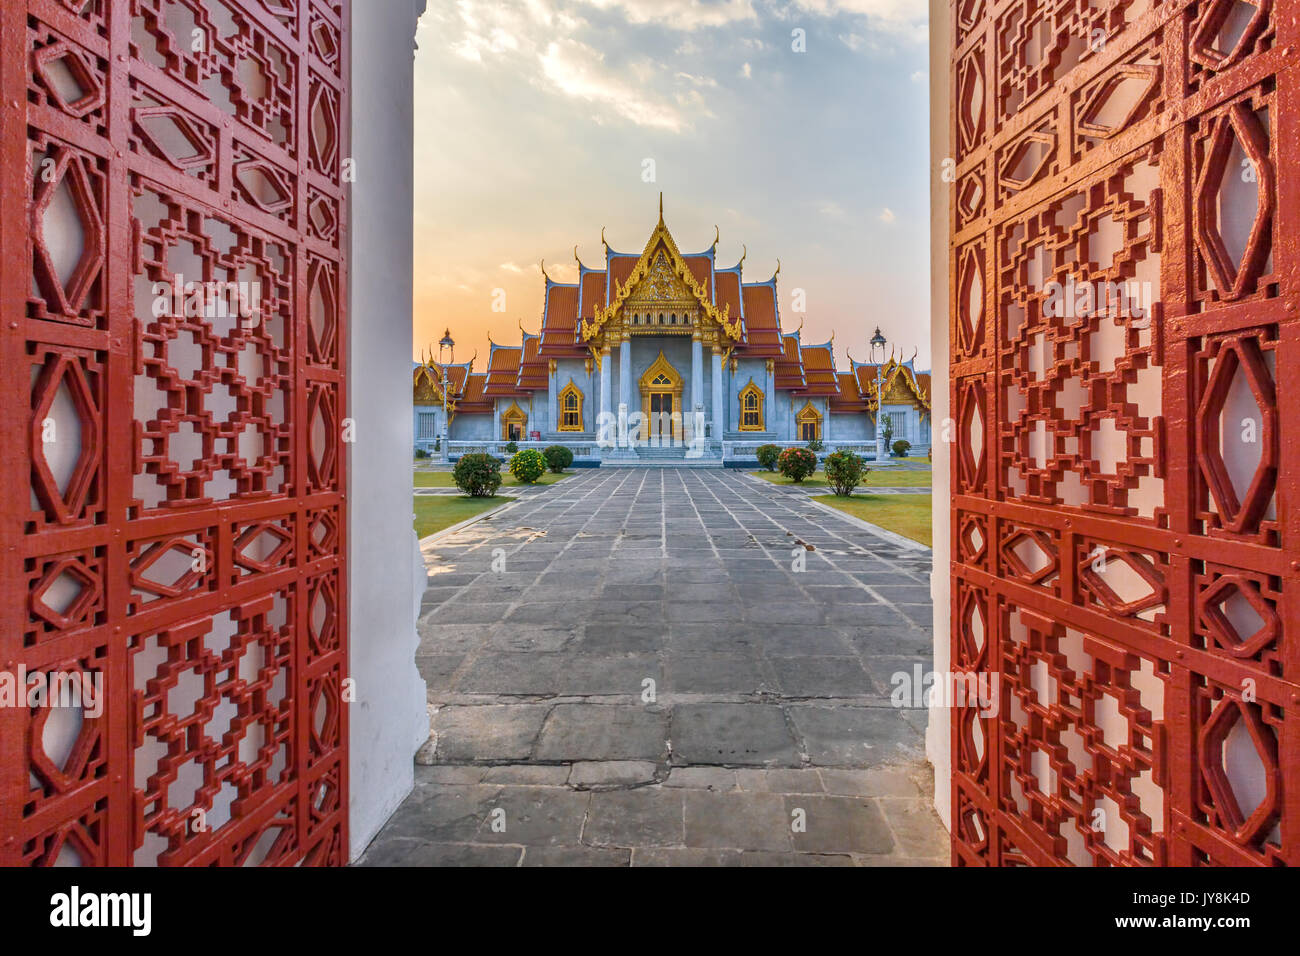 Entrance at the Marble Temple, Wat Benchamabophit, Bangkok, Thailand - Stock Image